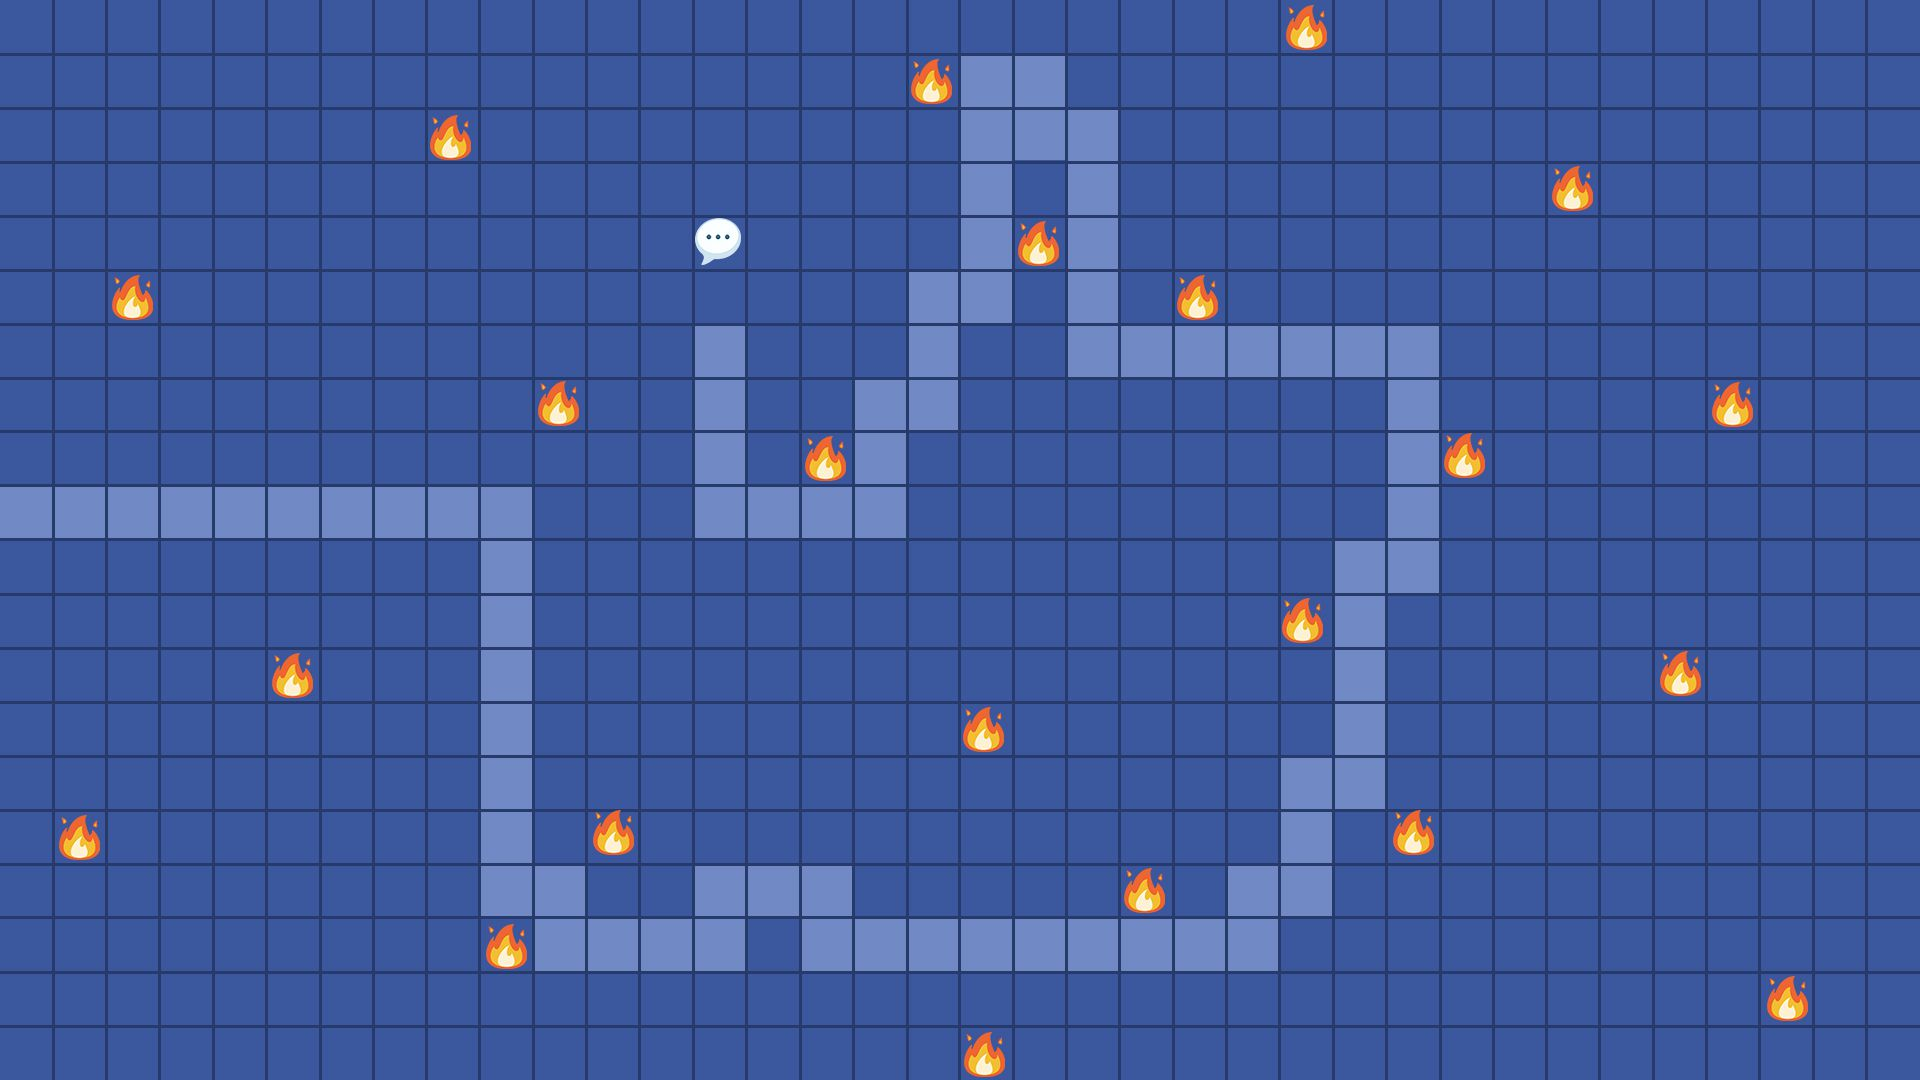 The Facebook logo superimposed into flaming version of the PC game Minesweeper.